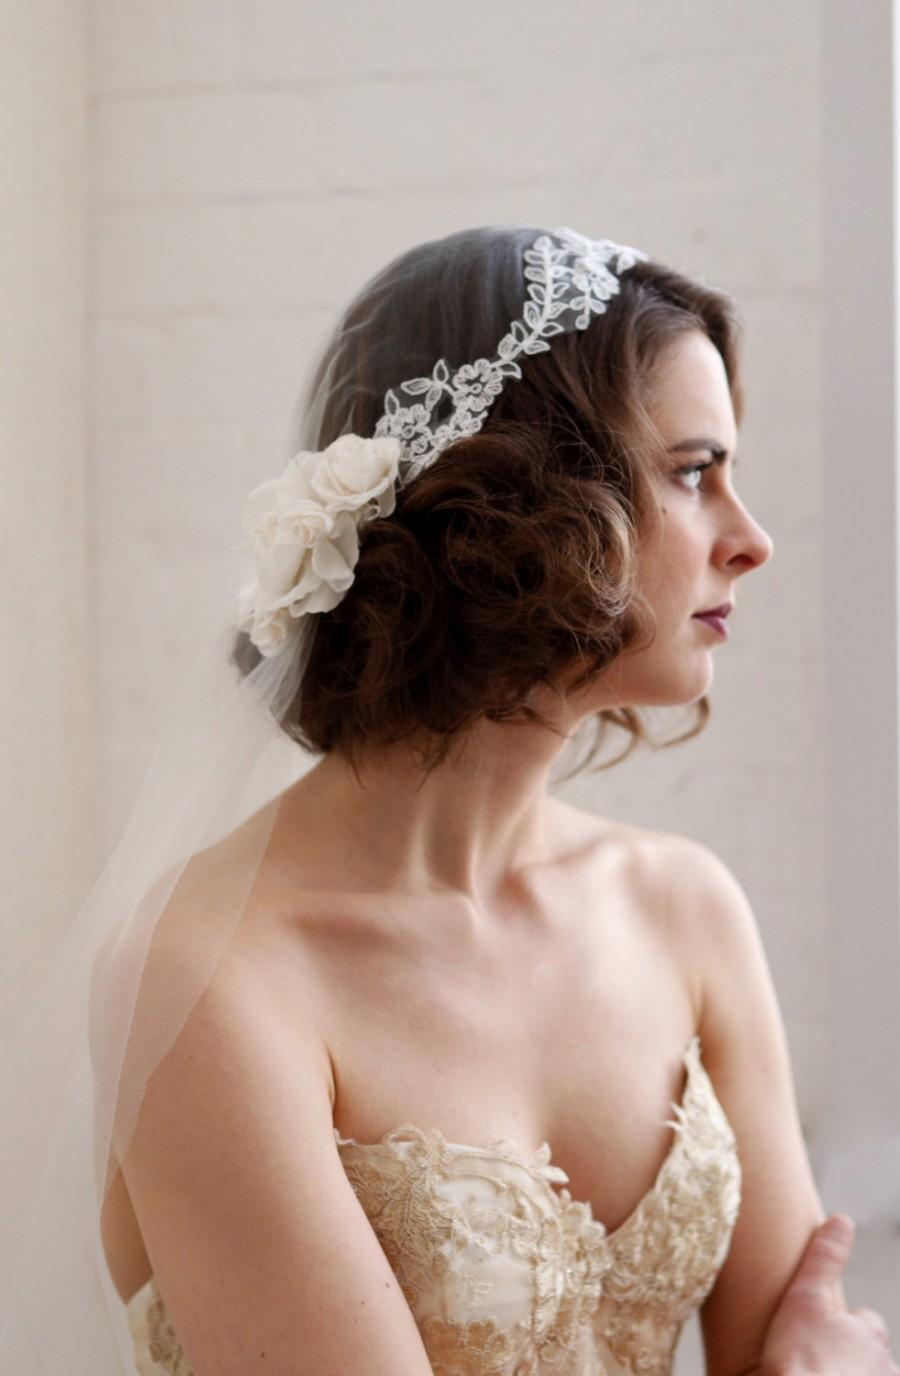 Свадьба - Juliet Cap wedding veil with lace trim. Vintage style Bridal veil, ivory cap veil fingertip length, champagne cap veil chapel length